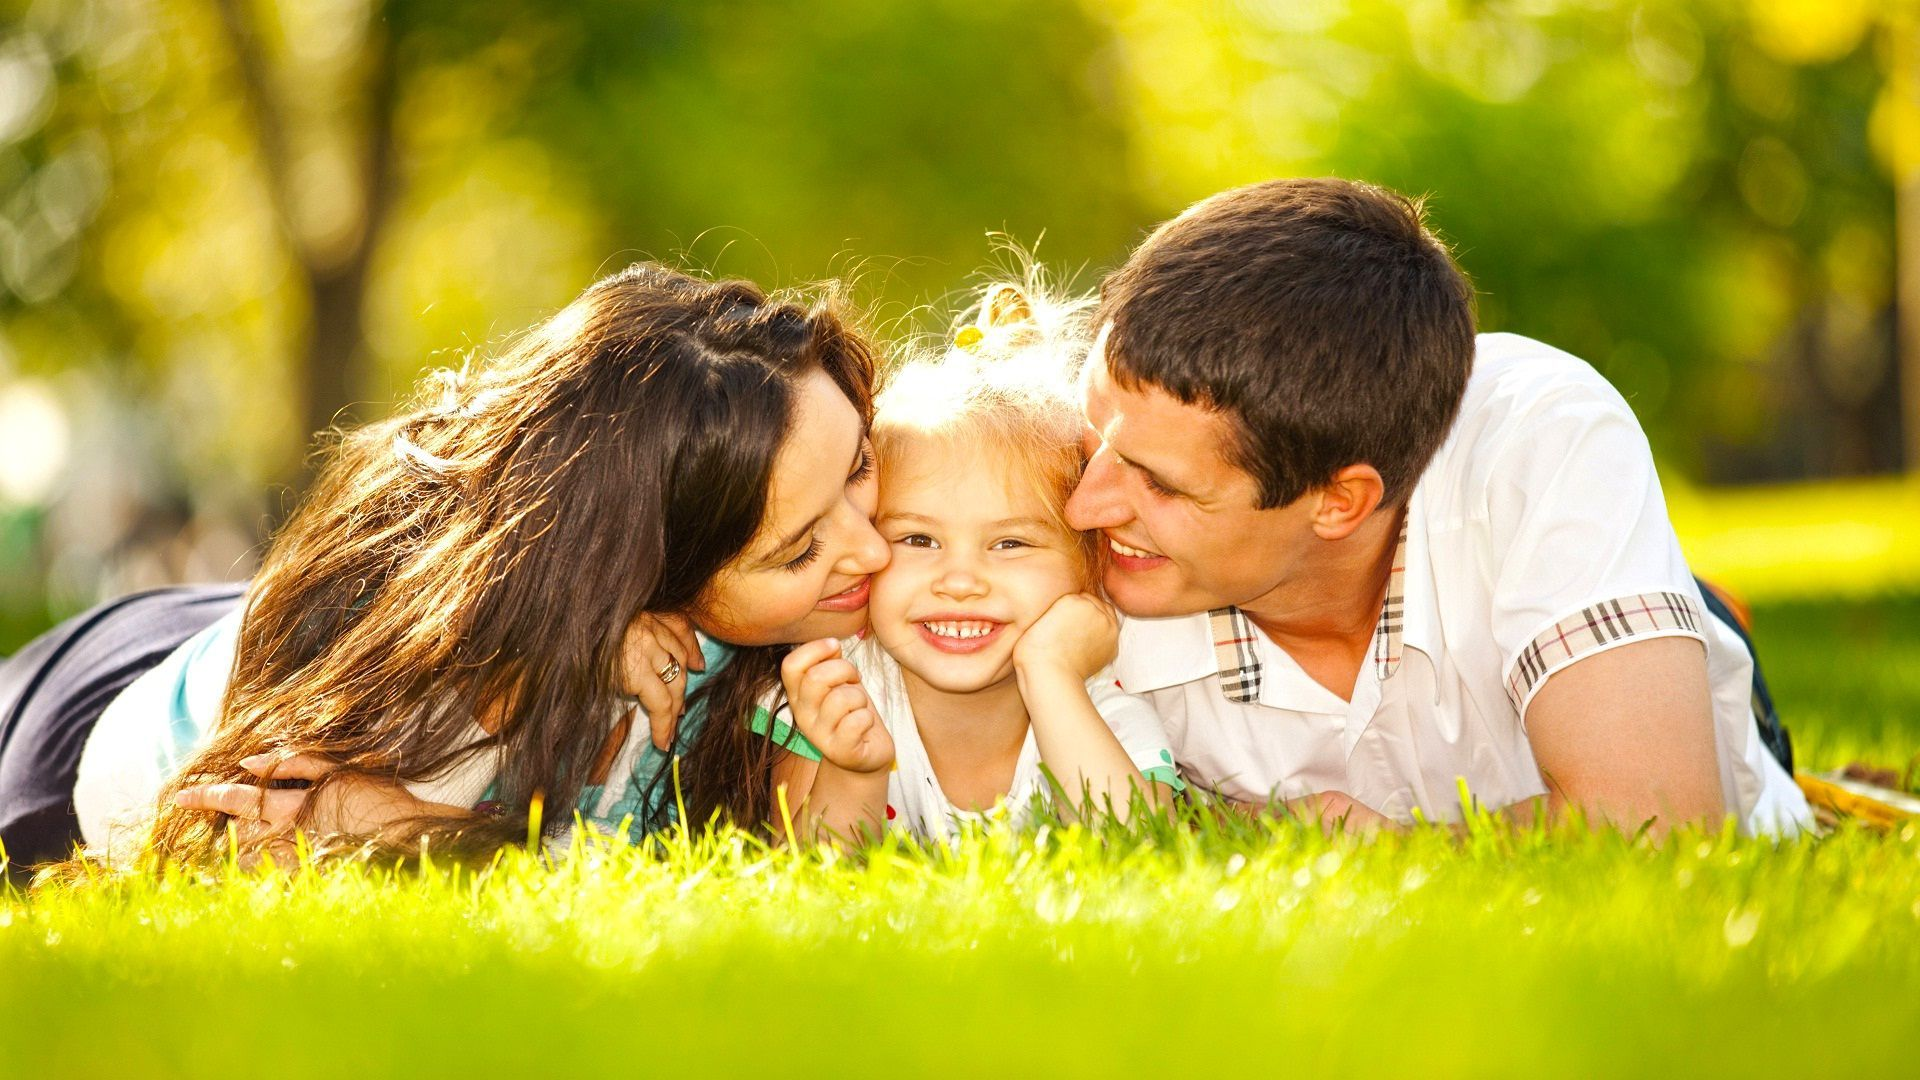 Happy Family Wallpapers - Top Free Happy Family Backgrounds ...